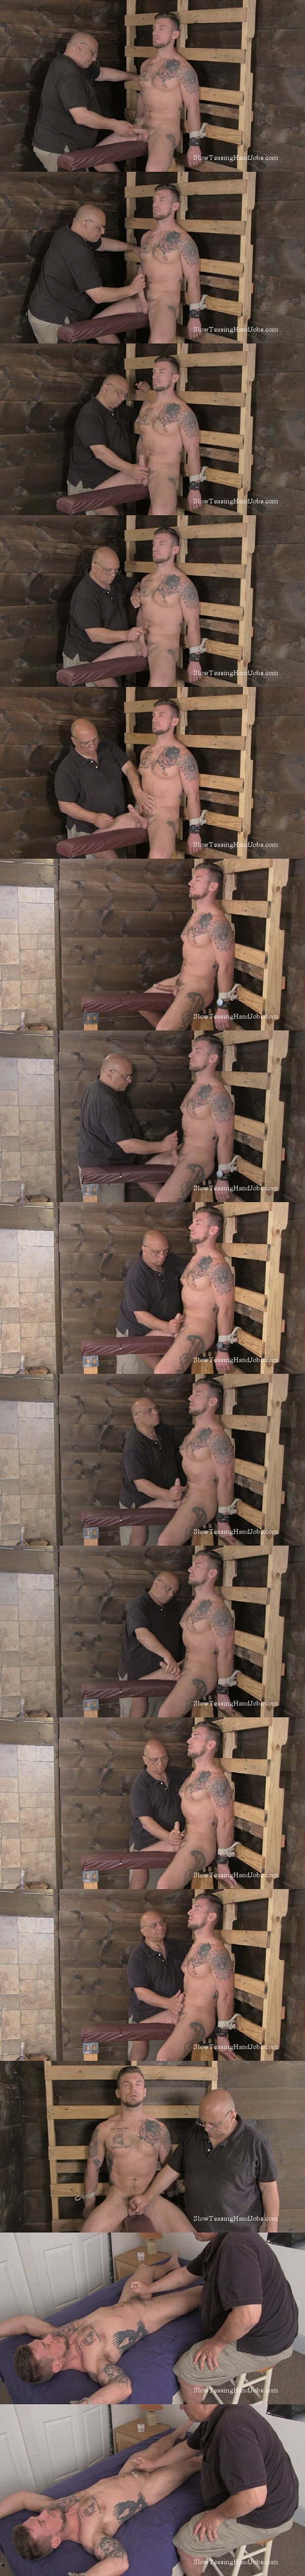 Muscular handsome straight hunk Dave slowly jerked off at Slowteasinghandjobs 02